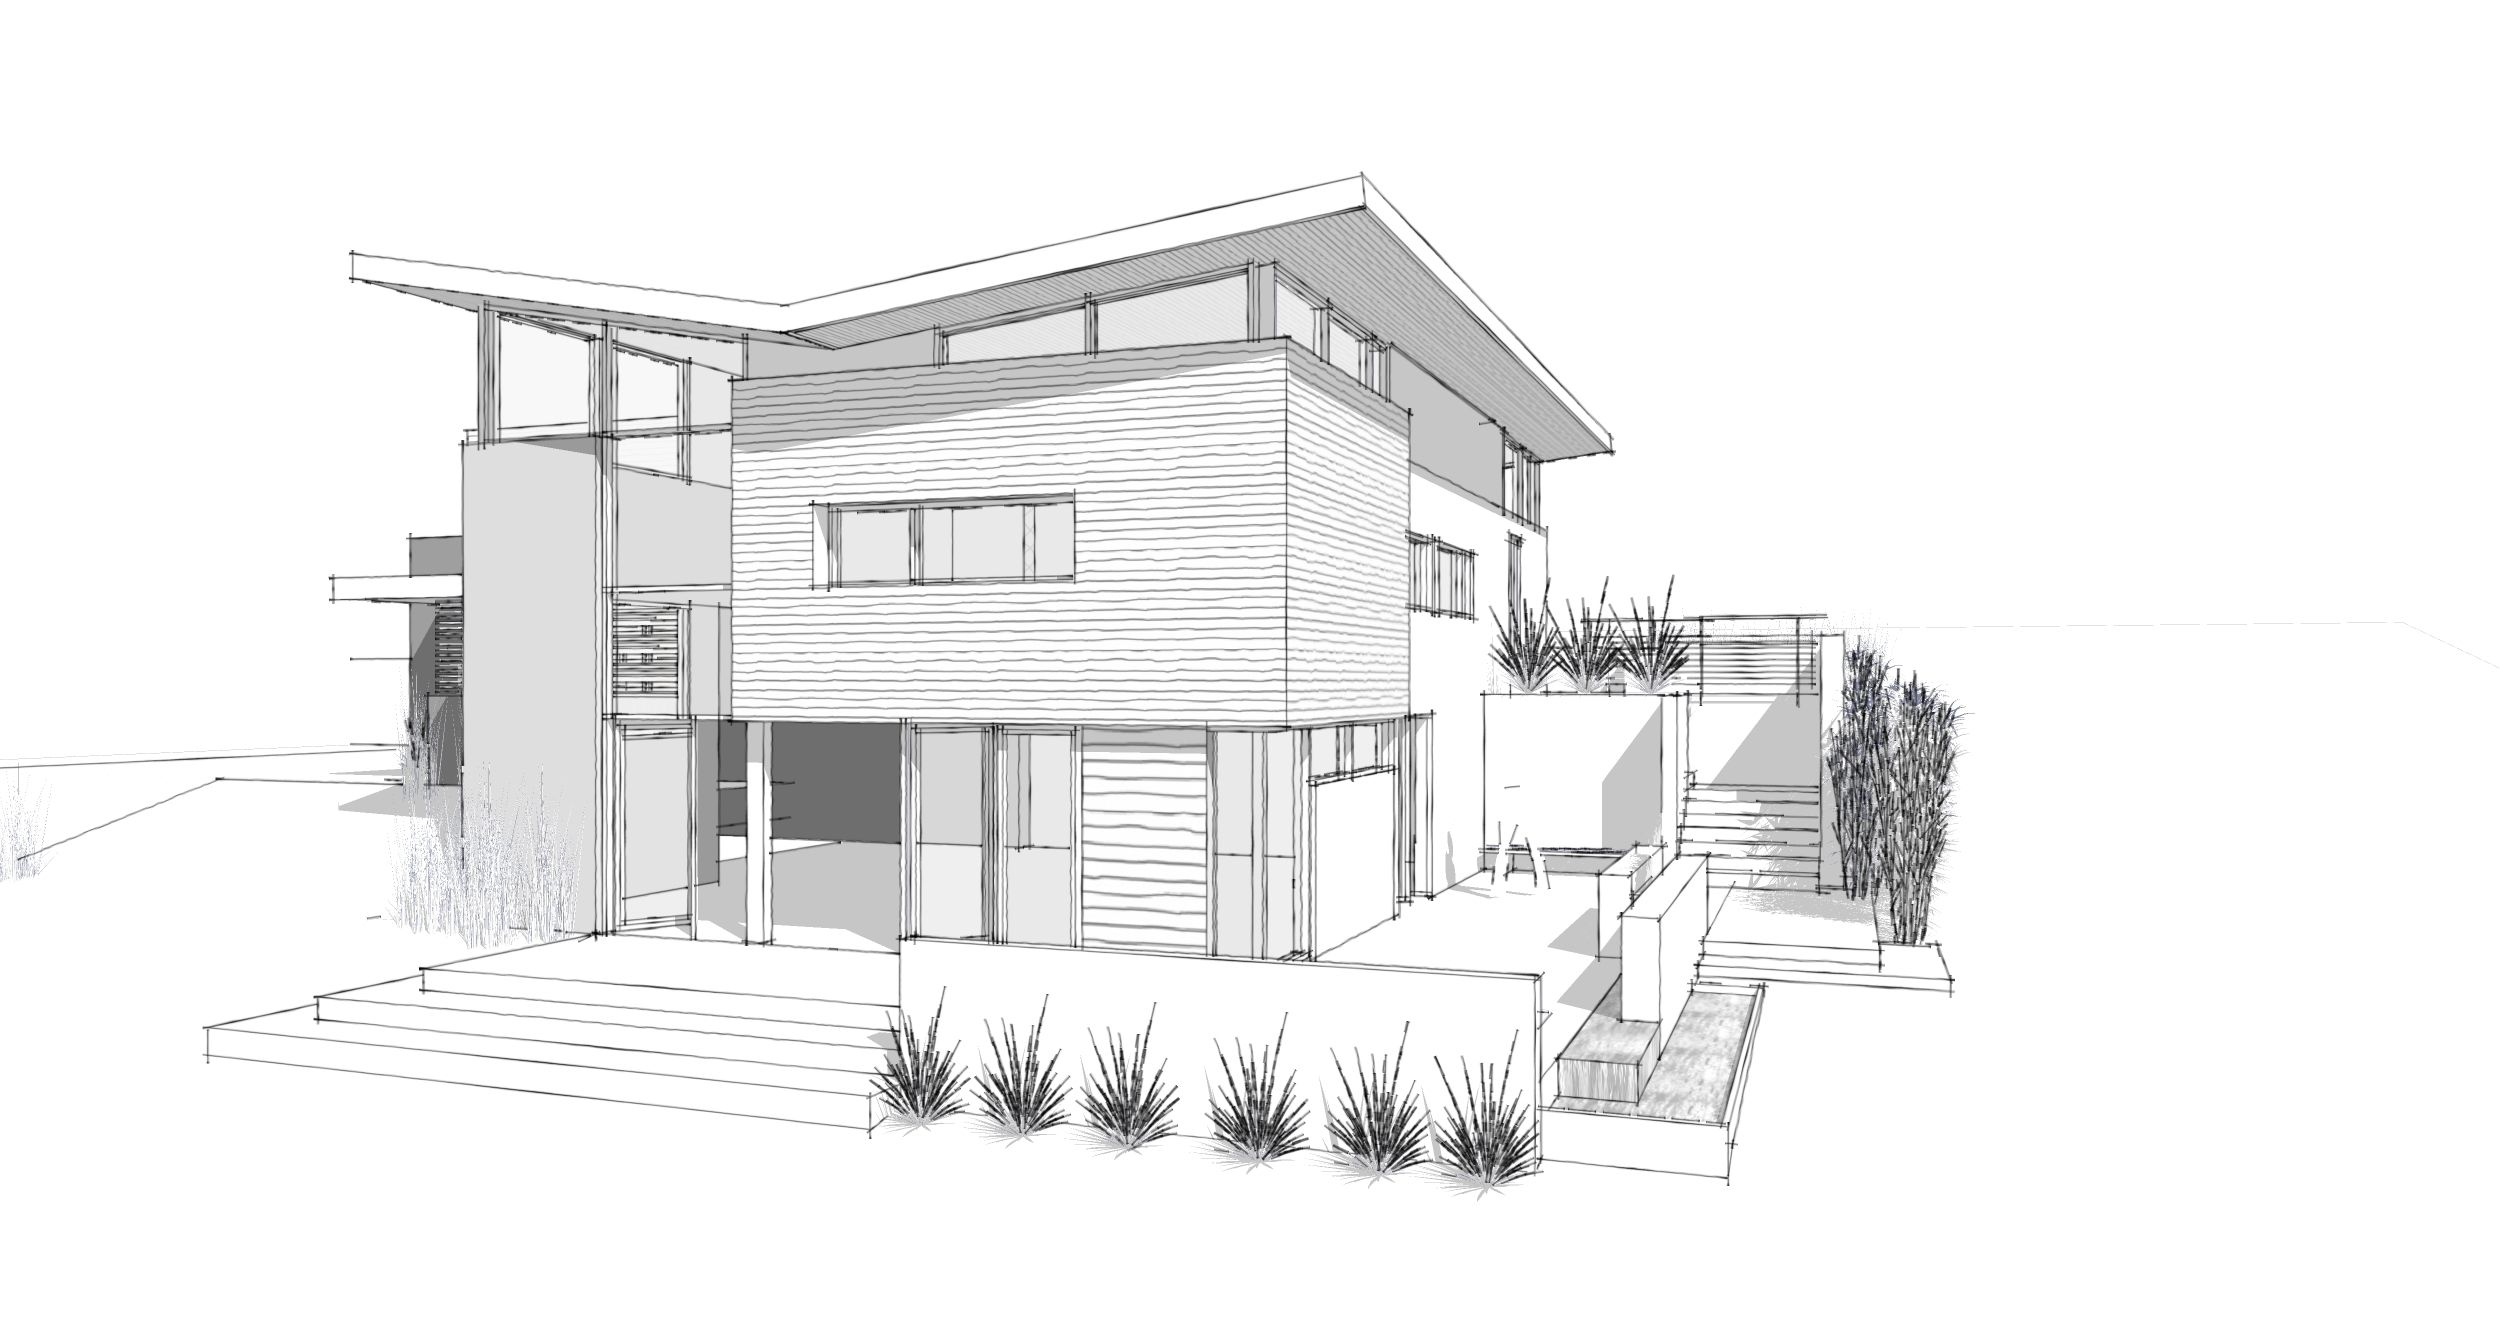 Modern home architecture sketches design ideas 13435 for Architectural design home plans